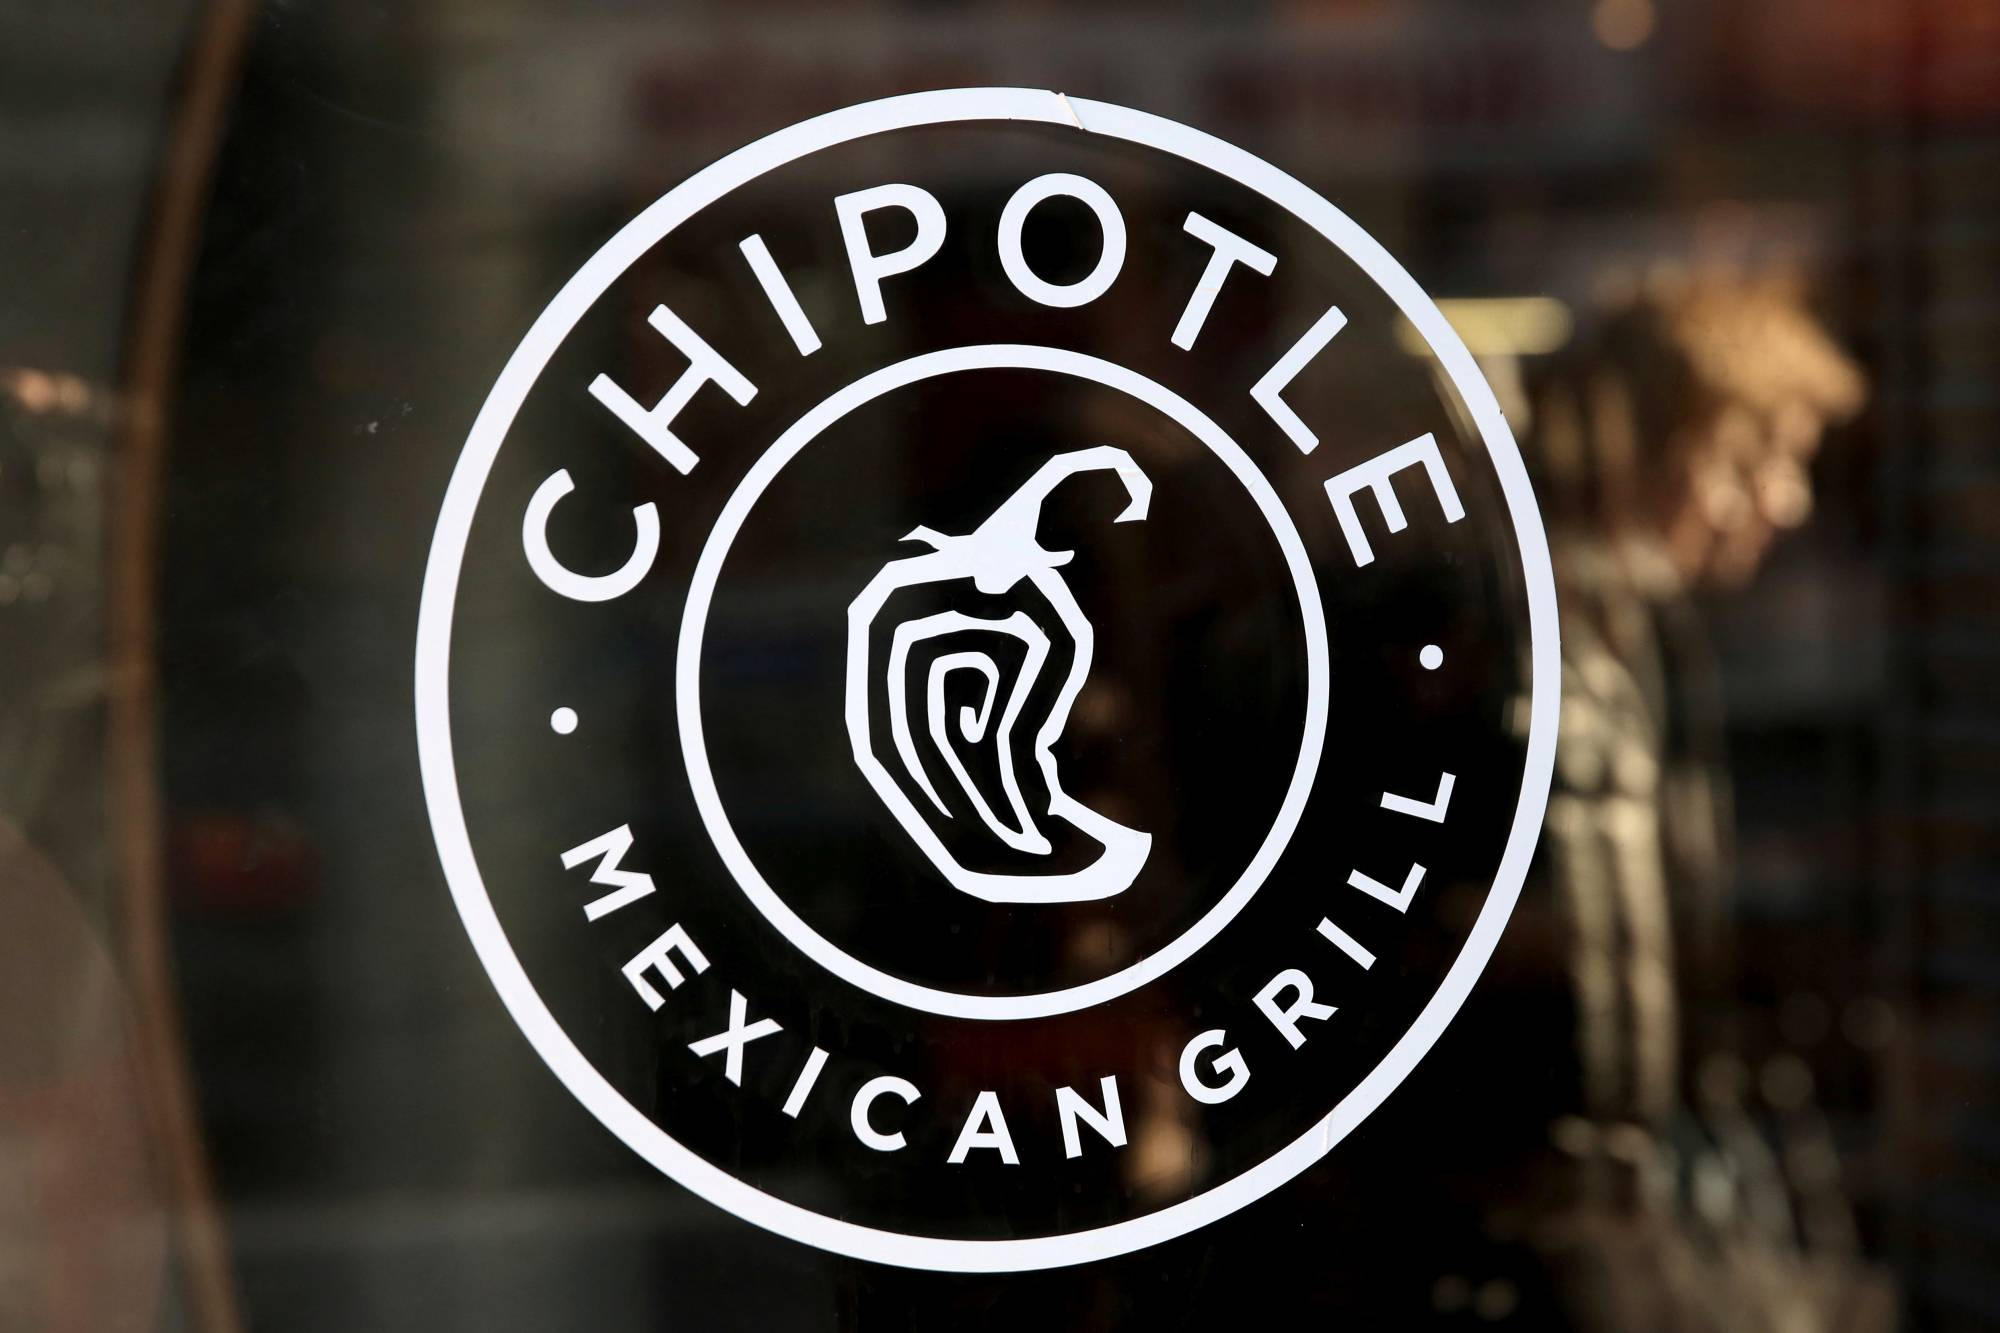 Chipotle, a Mexican grill chain, recently disclosed that its CEO made nearly 3,000 times the median employee salary in 2020, up from 1,136 times in 2019. | REUTERS